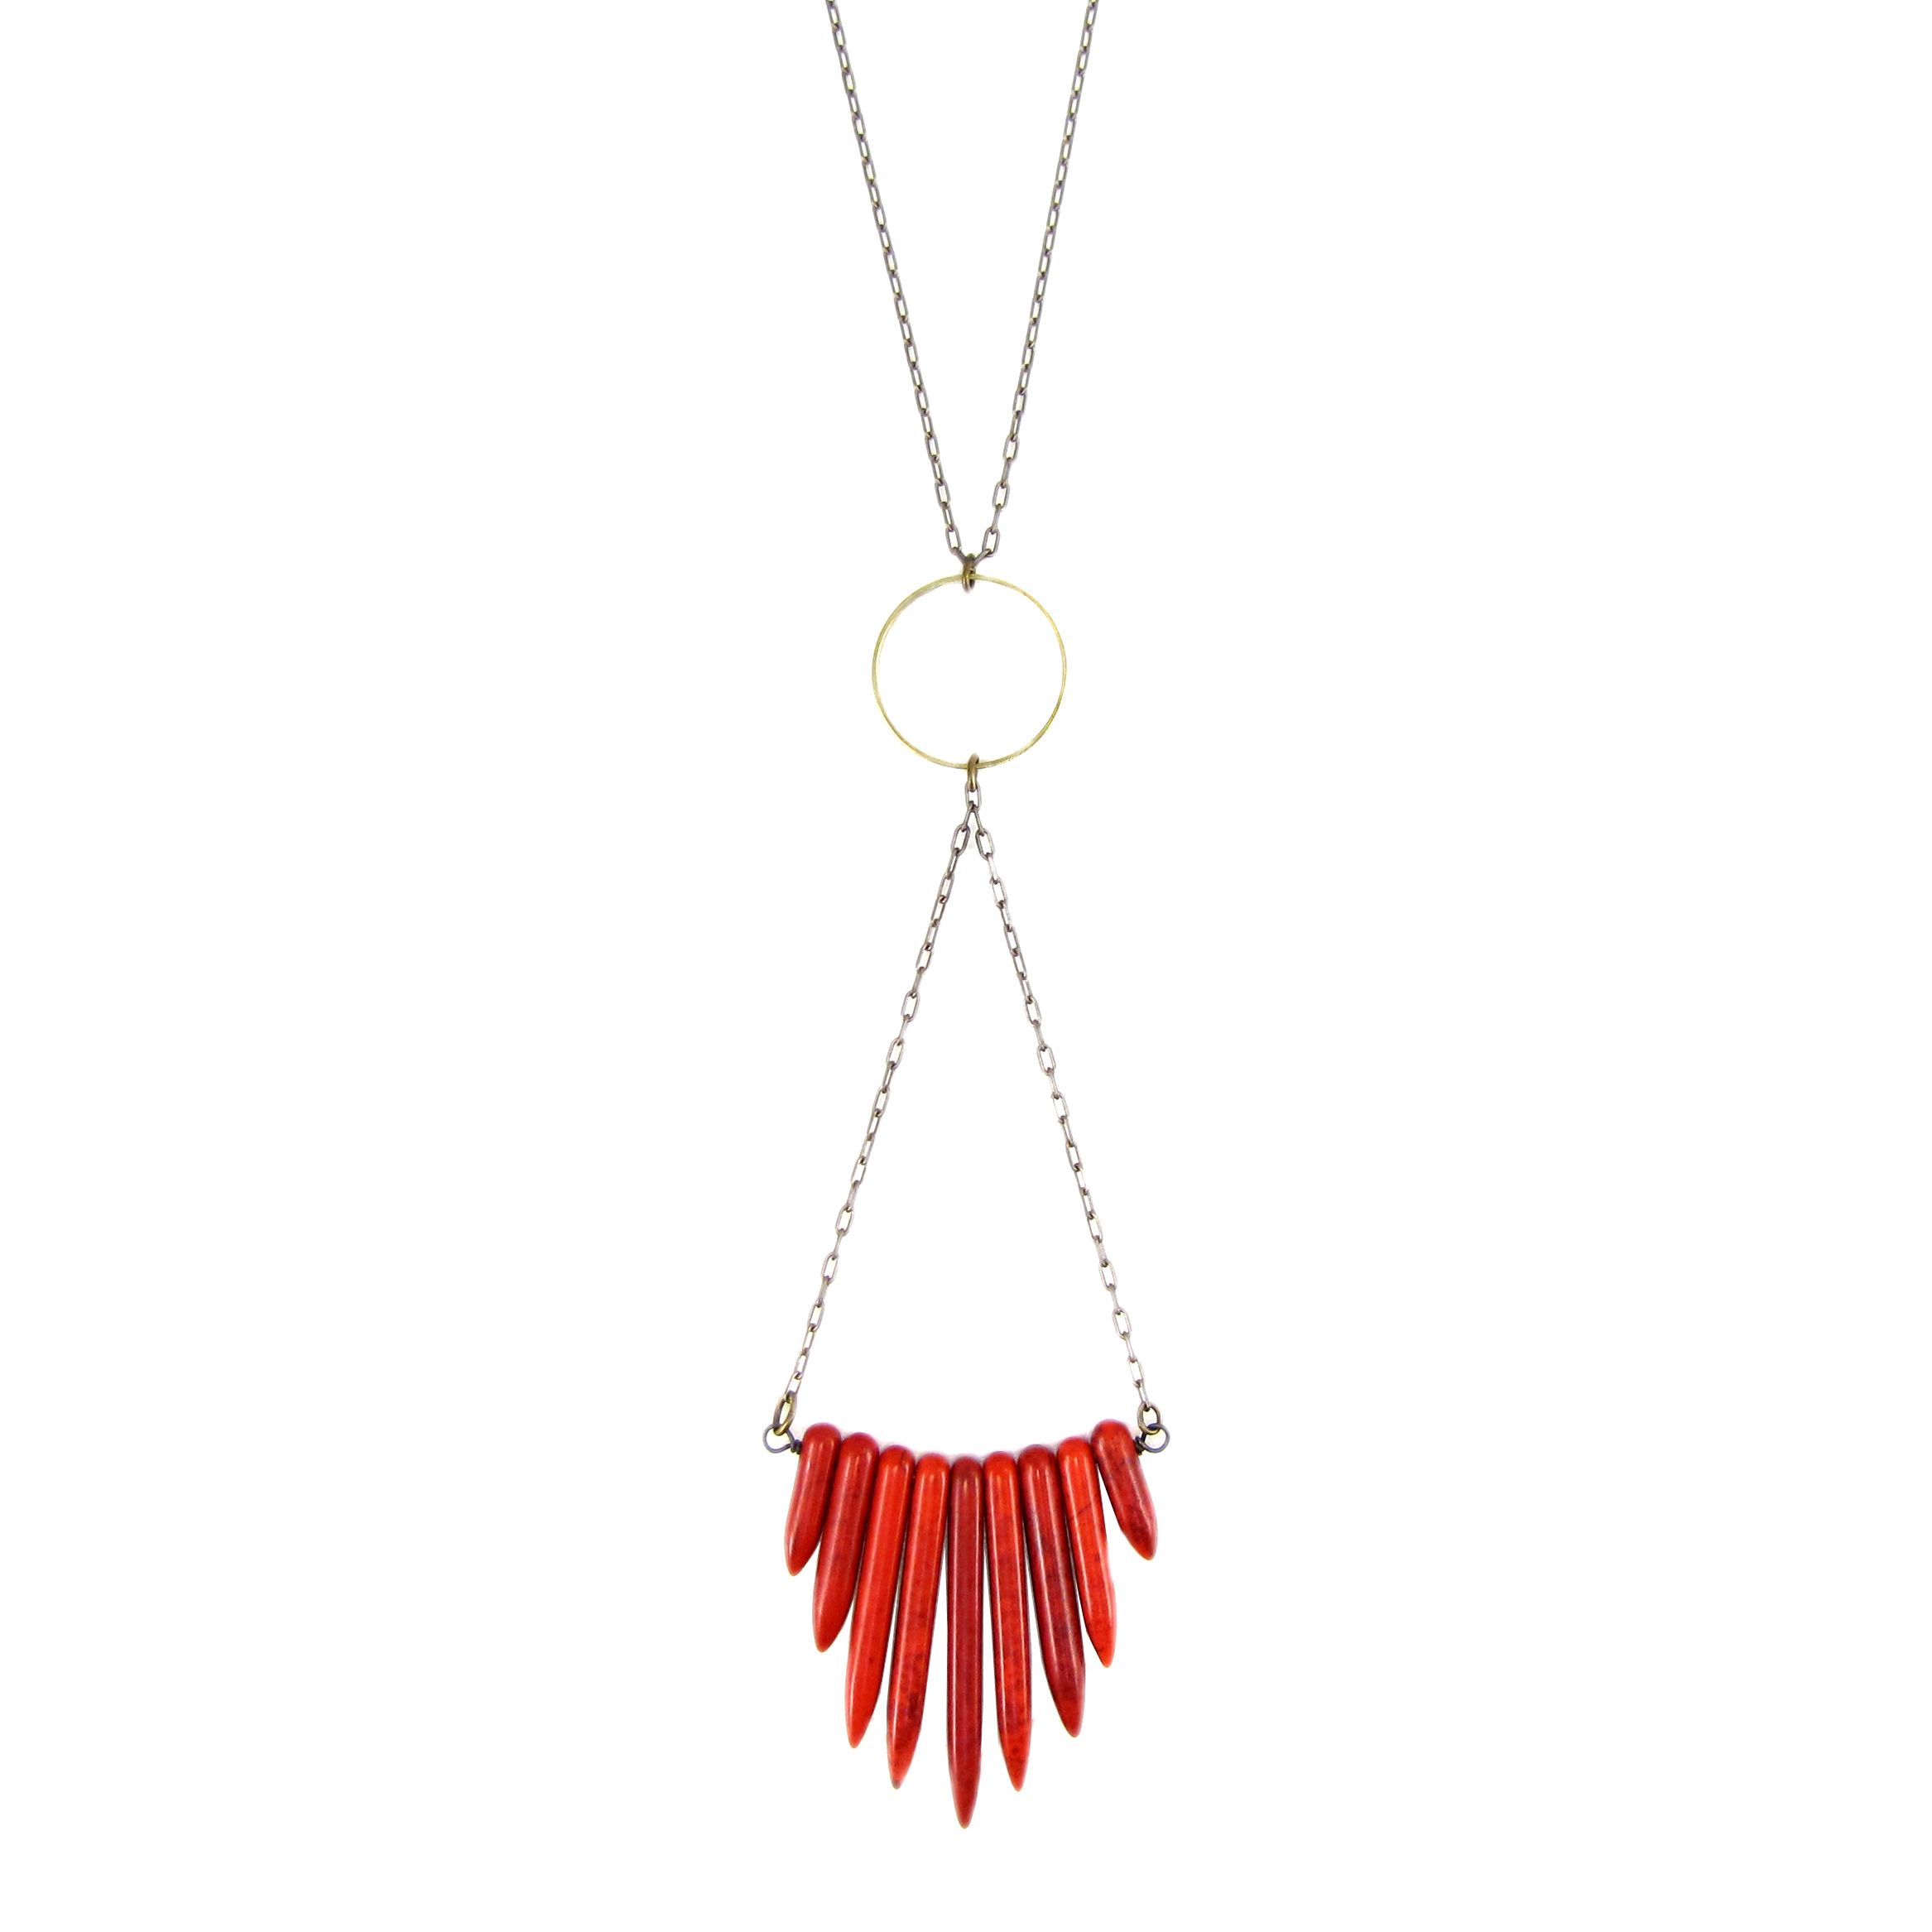 Red Howlite Bead Statement Necklace. Features red howlite beads hanging from a brass circle on a brass chain.